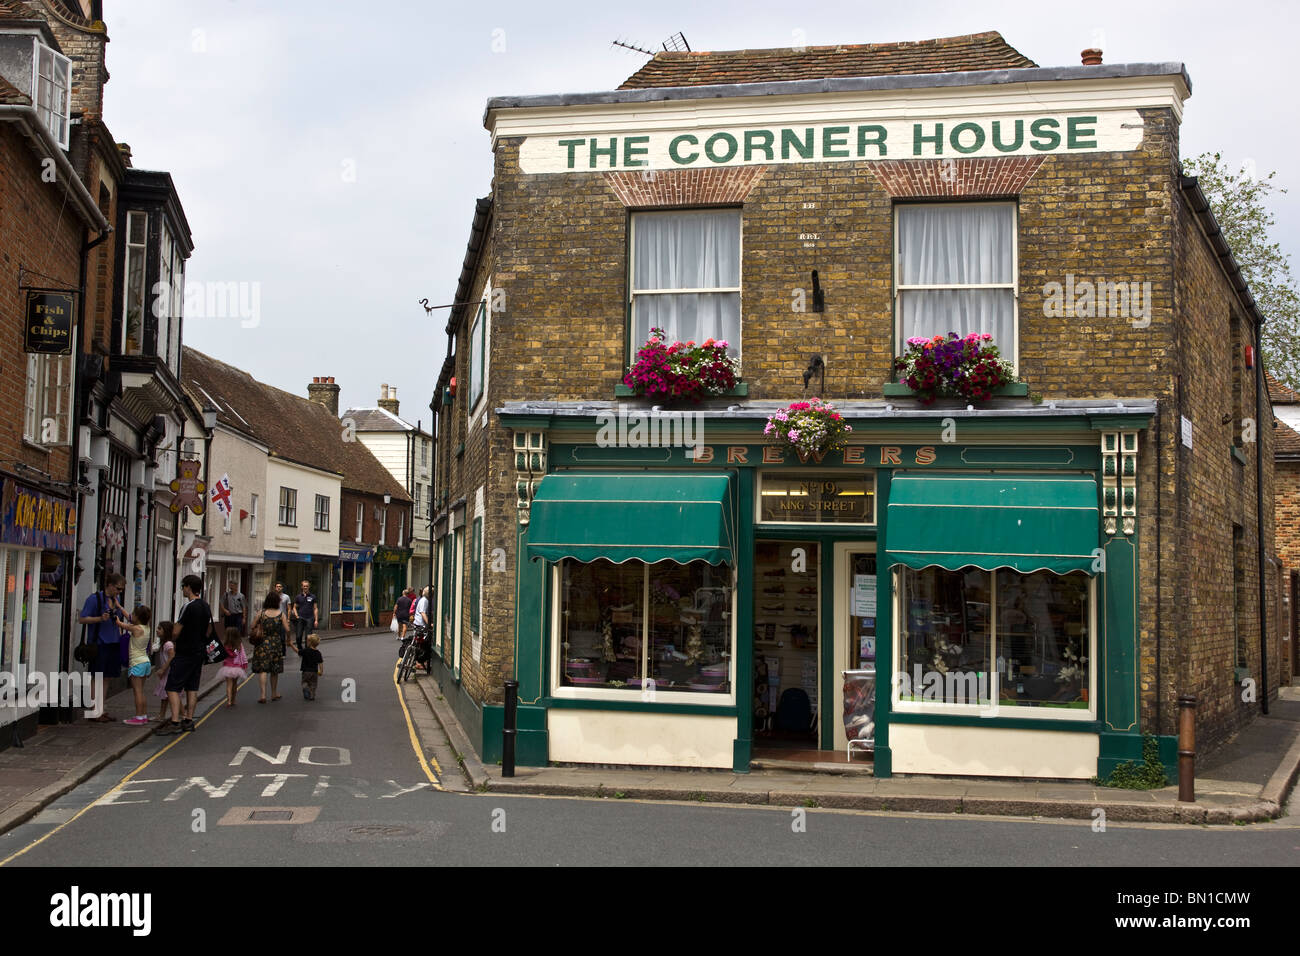 The Corner House Sandwich Kent - Stock Image